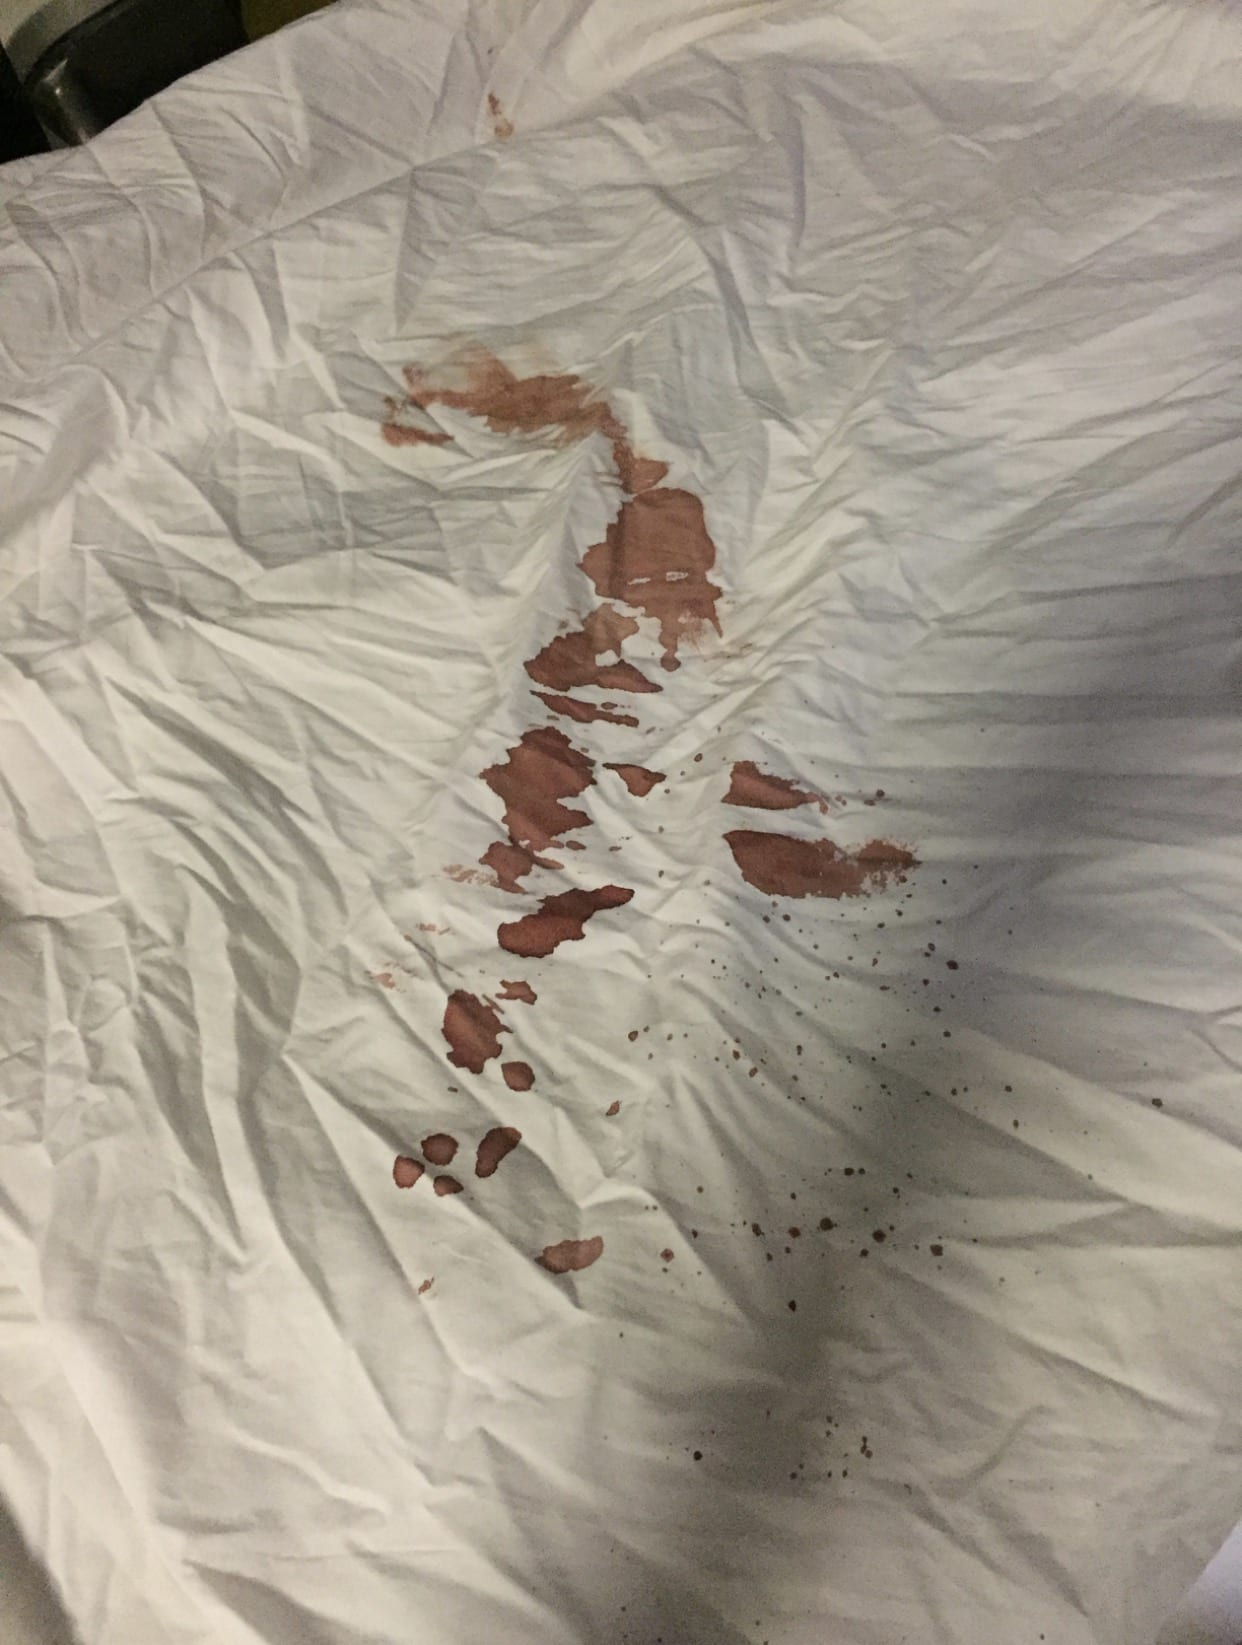 how to get rid of dried blood stains